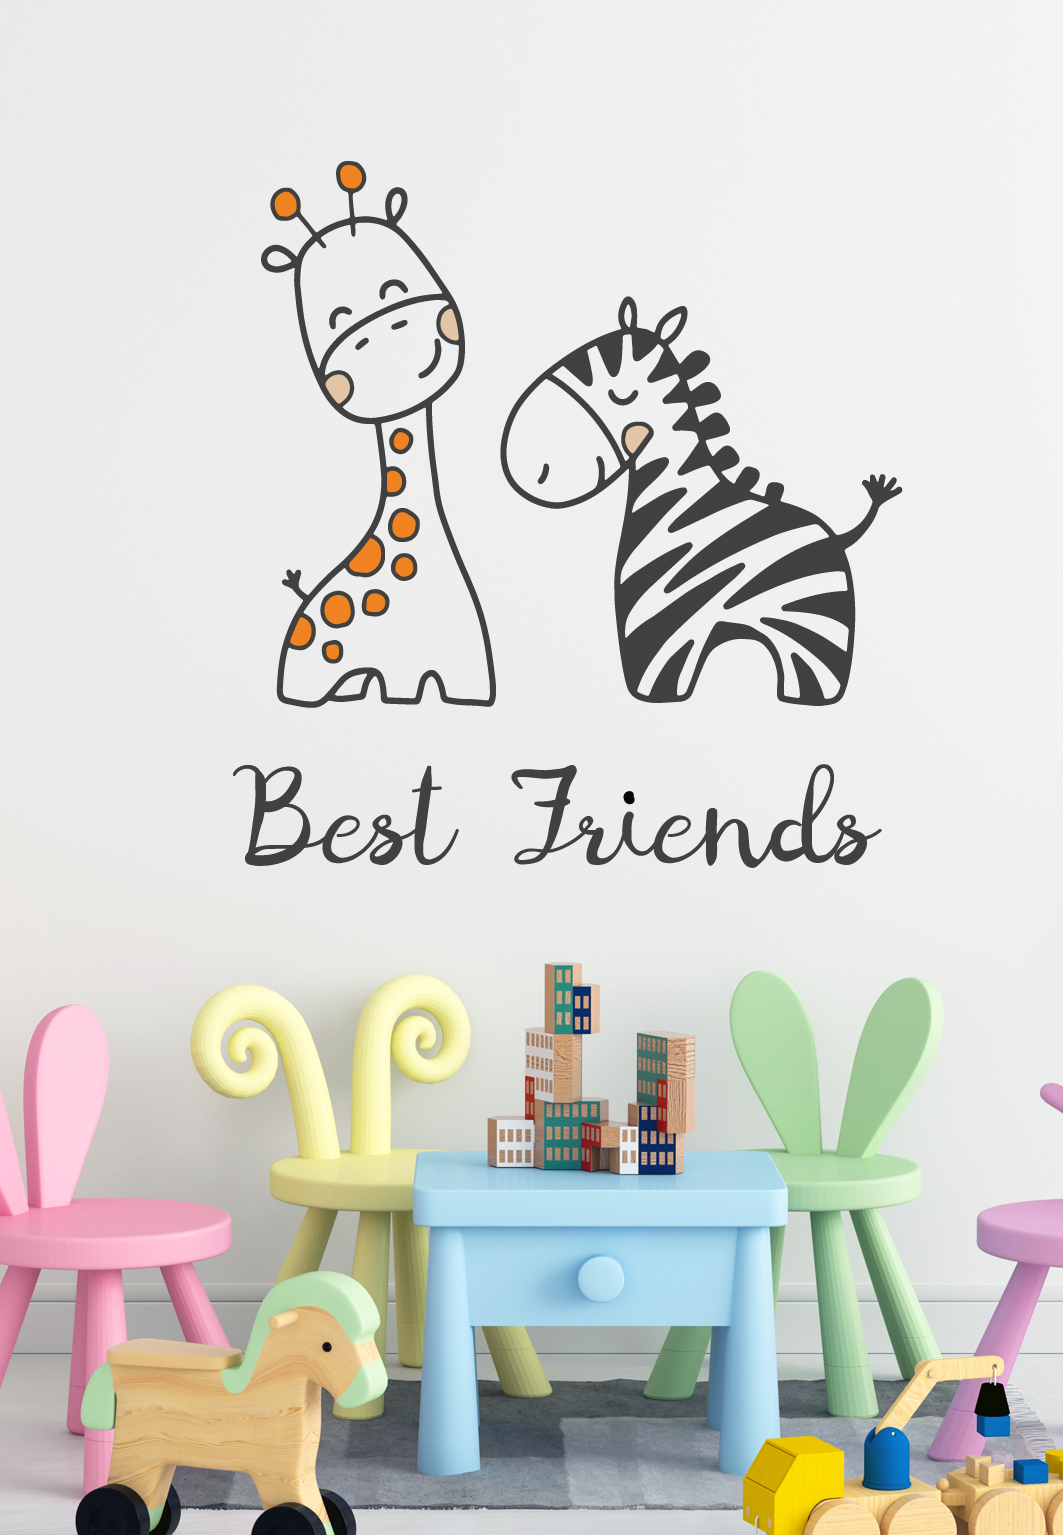 מדבקת קיר - Best Friends